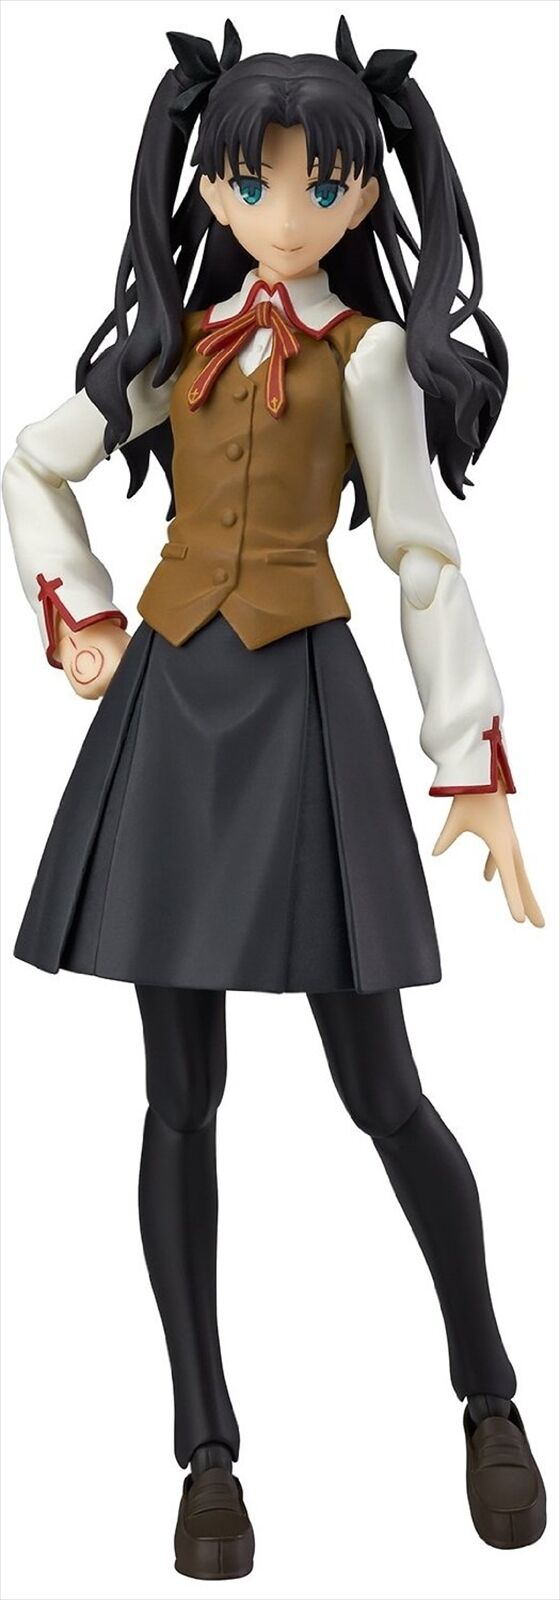 Max Factory figma Fate/Stay Night Unlimited Blade Works Rin Tohsaka 2.0 Figure